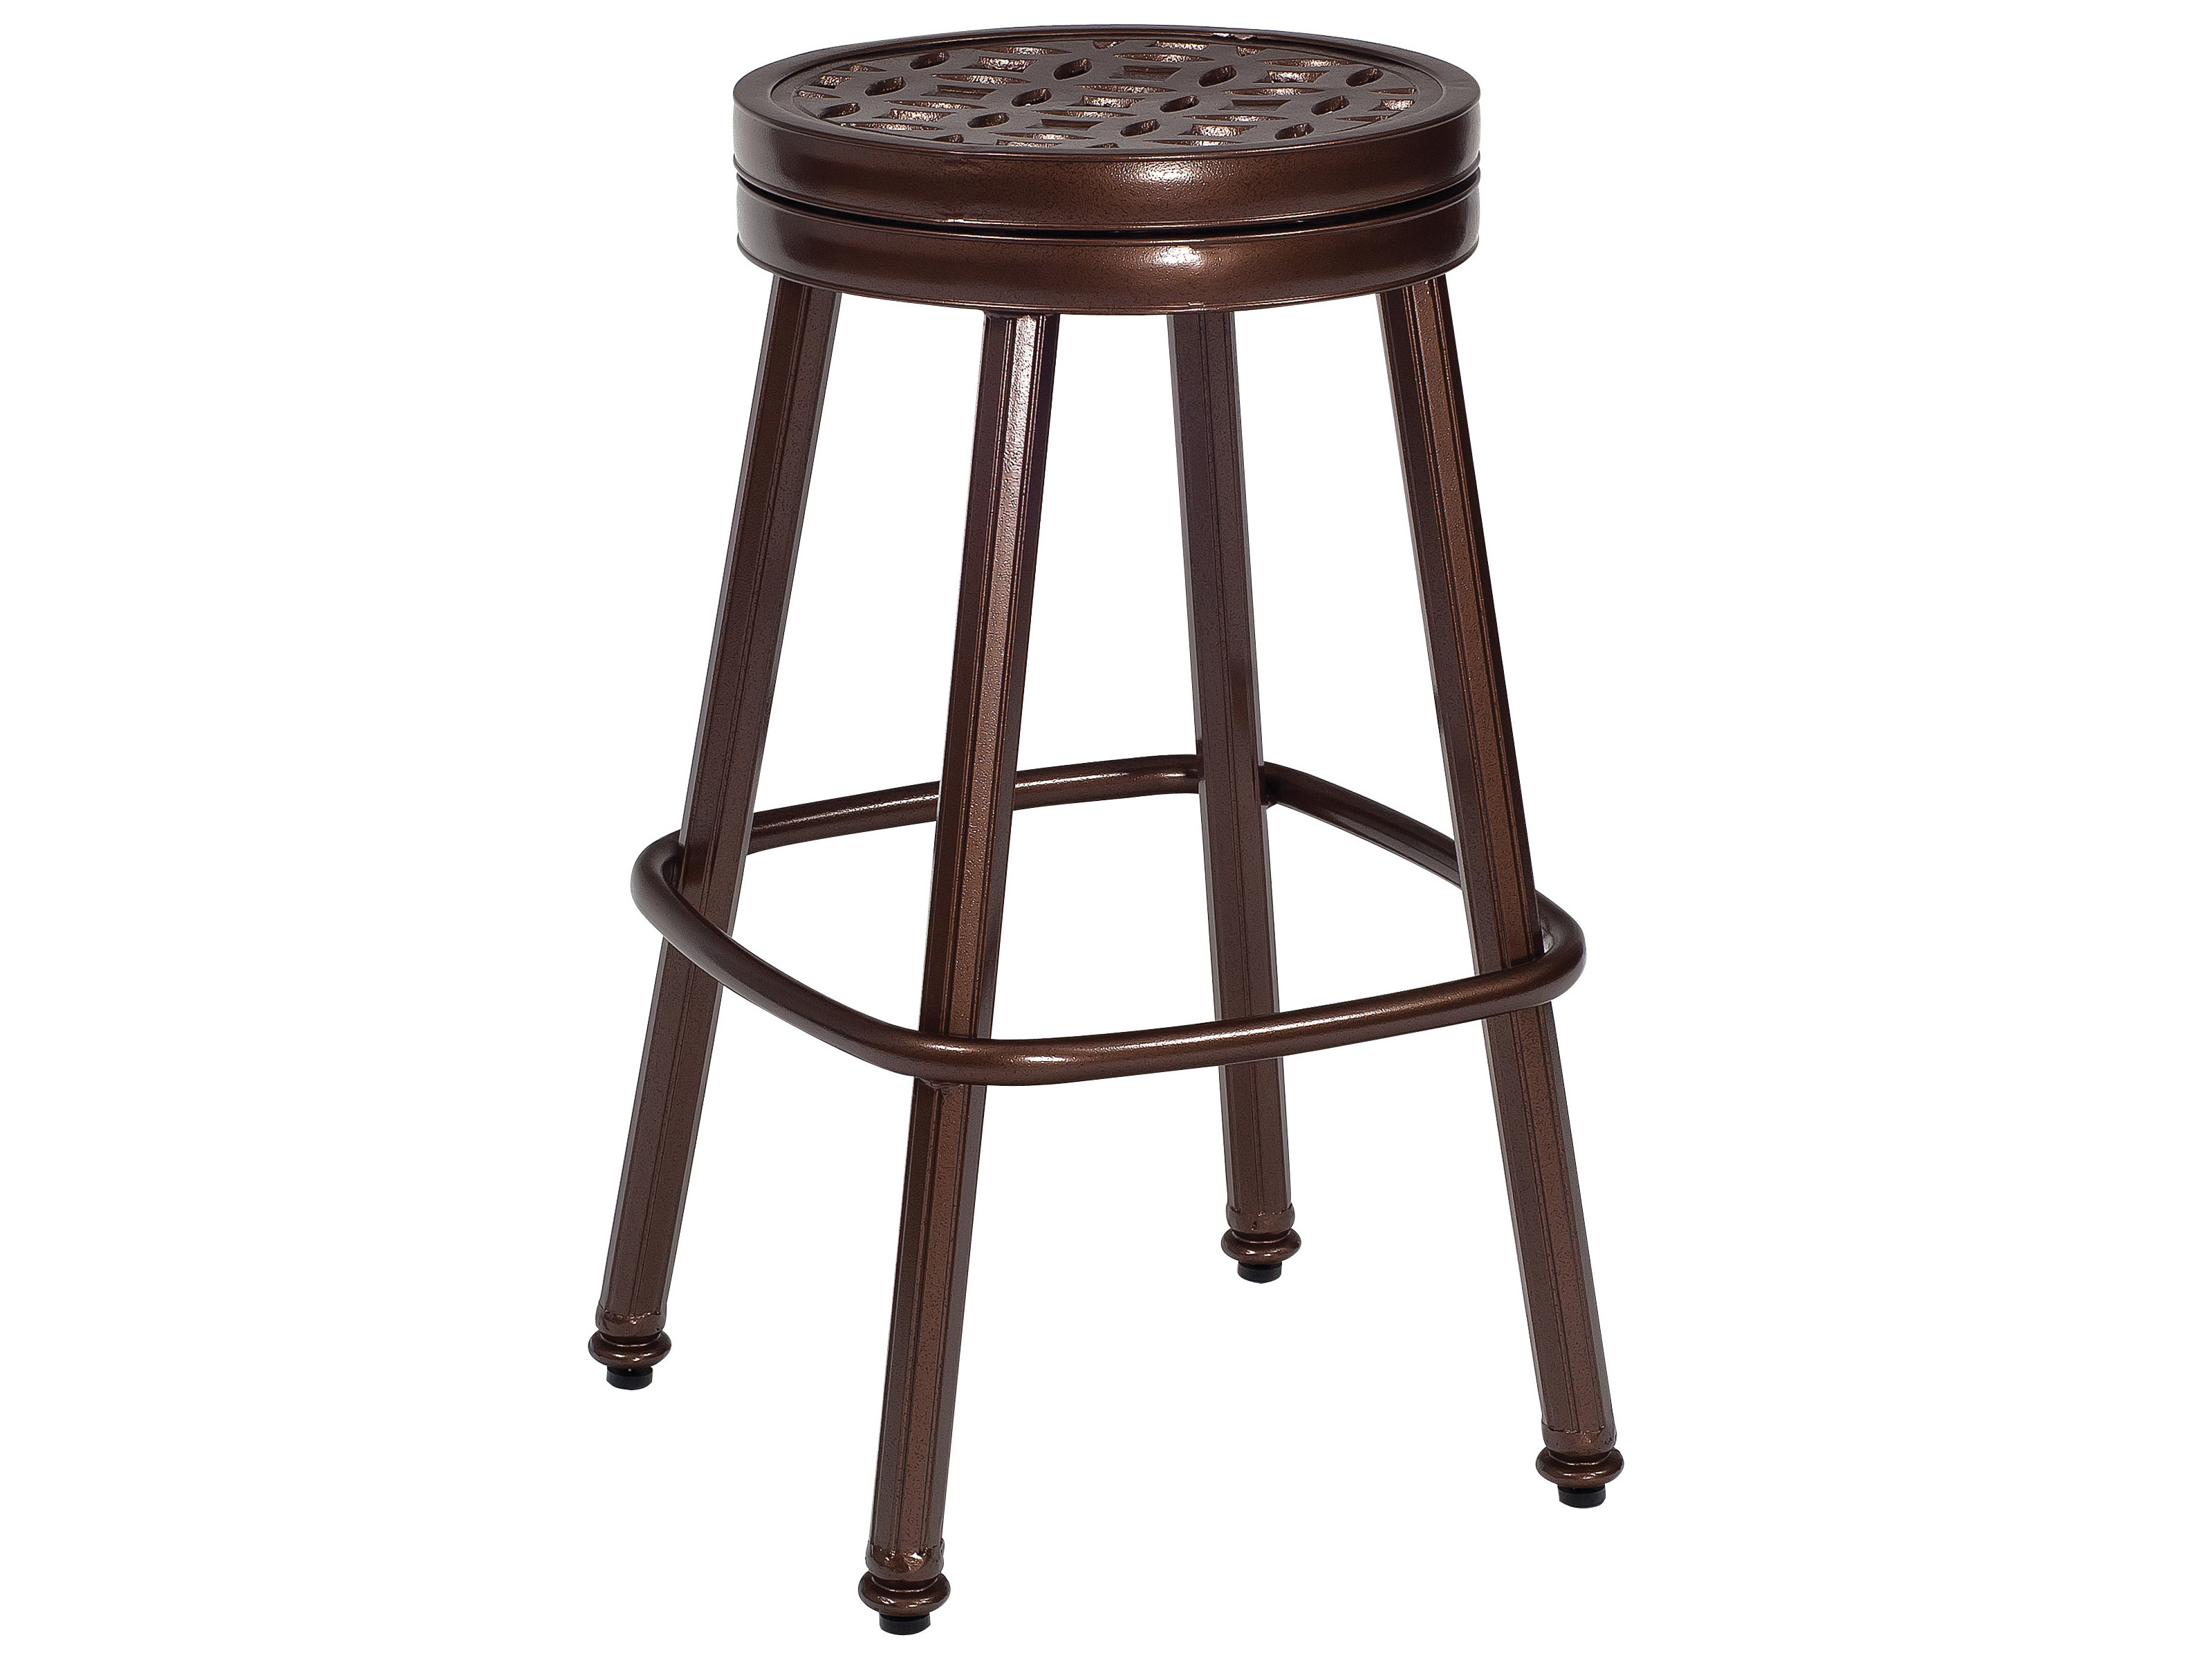 Woodard Casa Round Swivel Bar Stool Replacement Cushions  : WR3Y0668CH1zm from www.patioliving.com size 3199 x 2400 jpeg 817kB